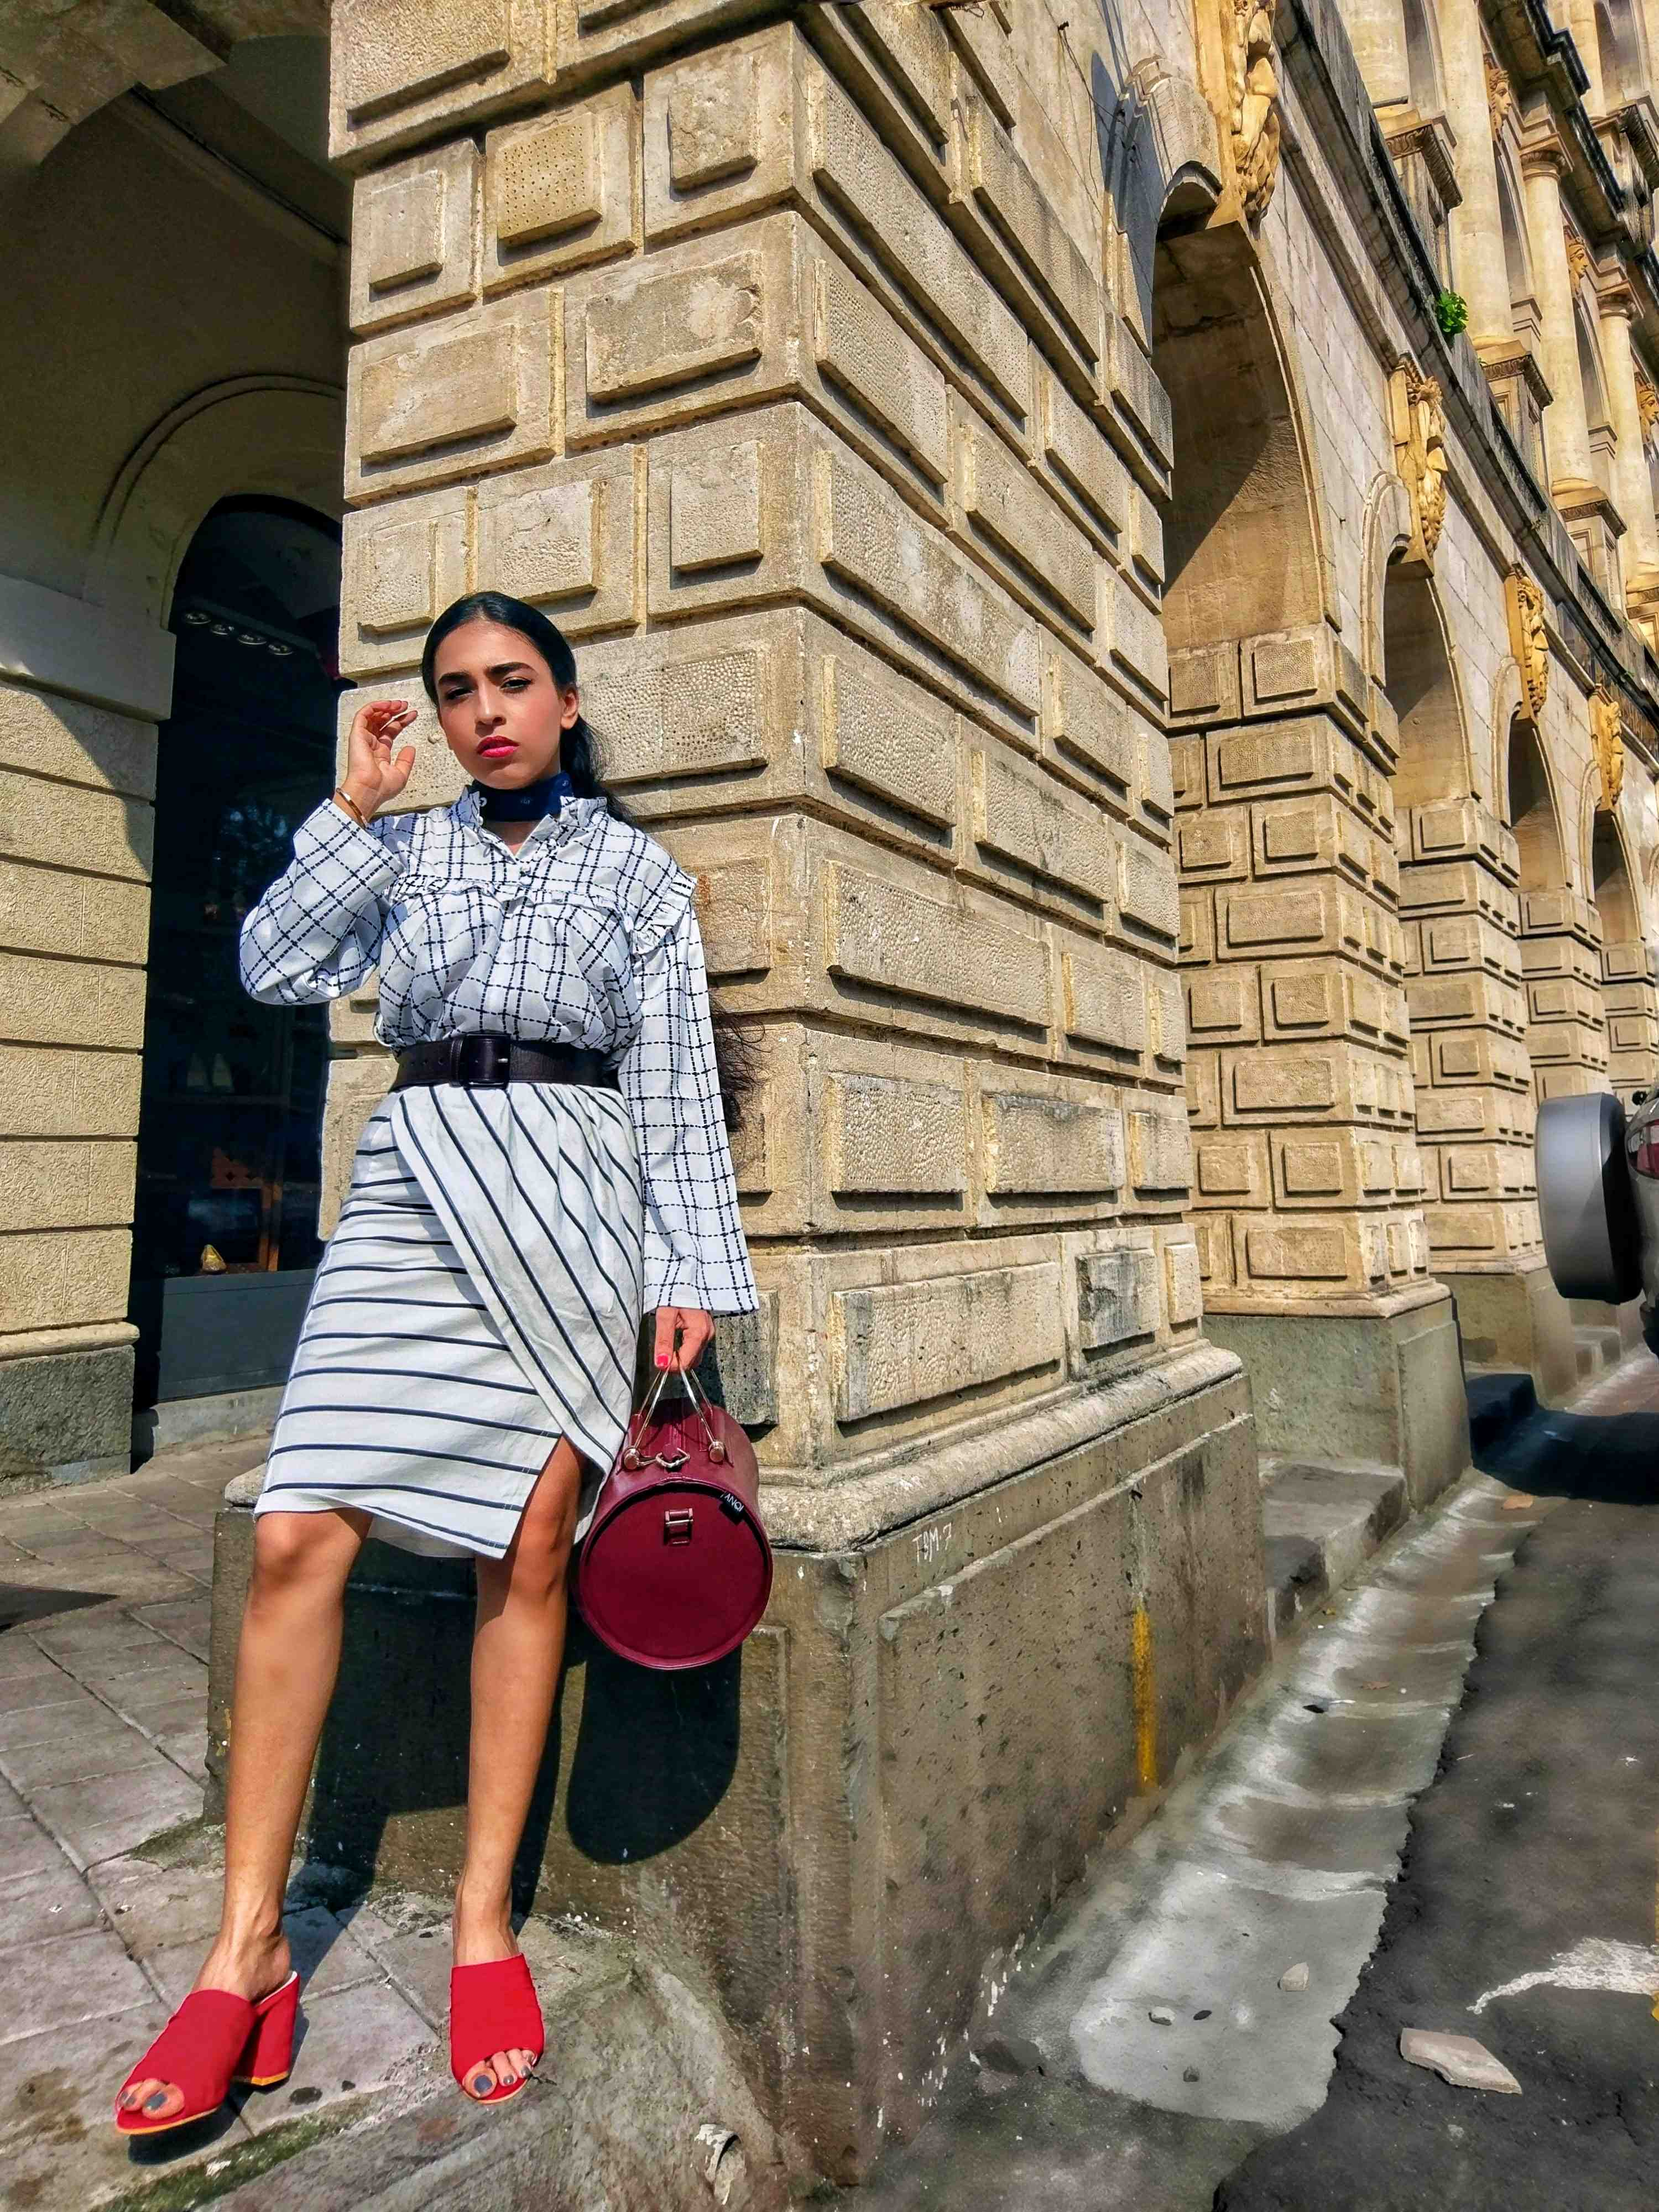 white shirt, checkered shirt, ruffled shirt, striped skirt, monochrome style, stripes checks, black and white style, street style, india fashion week